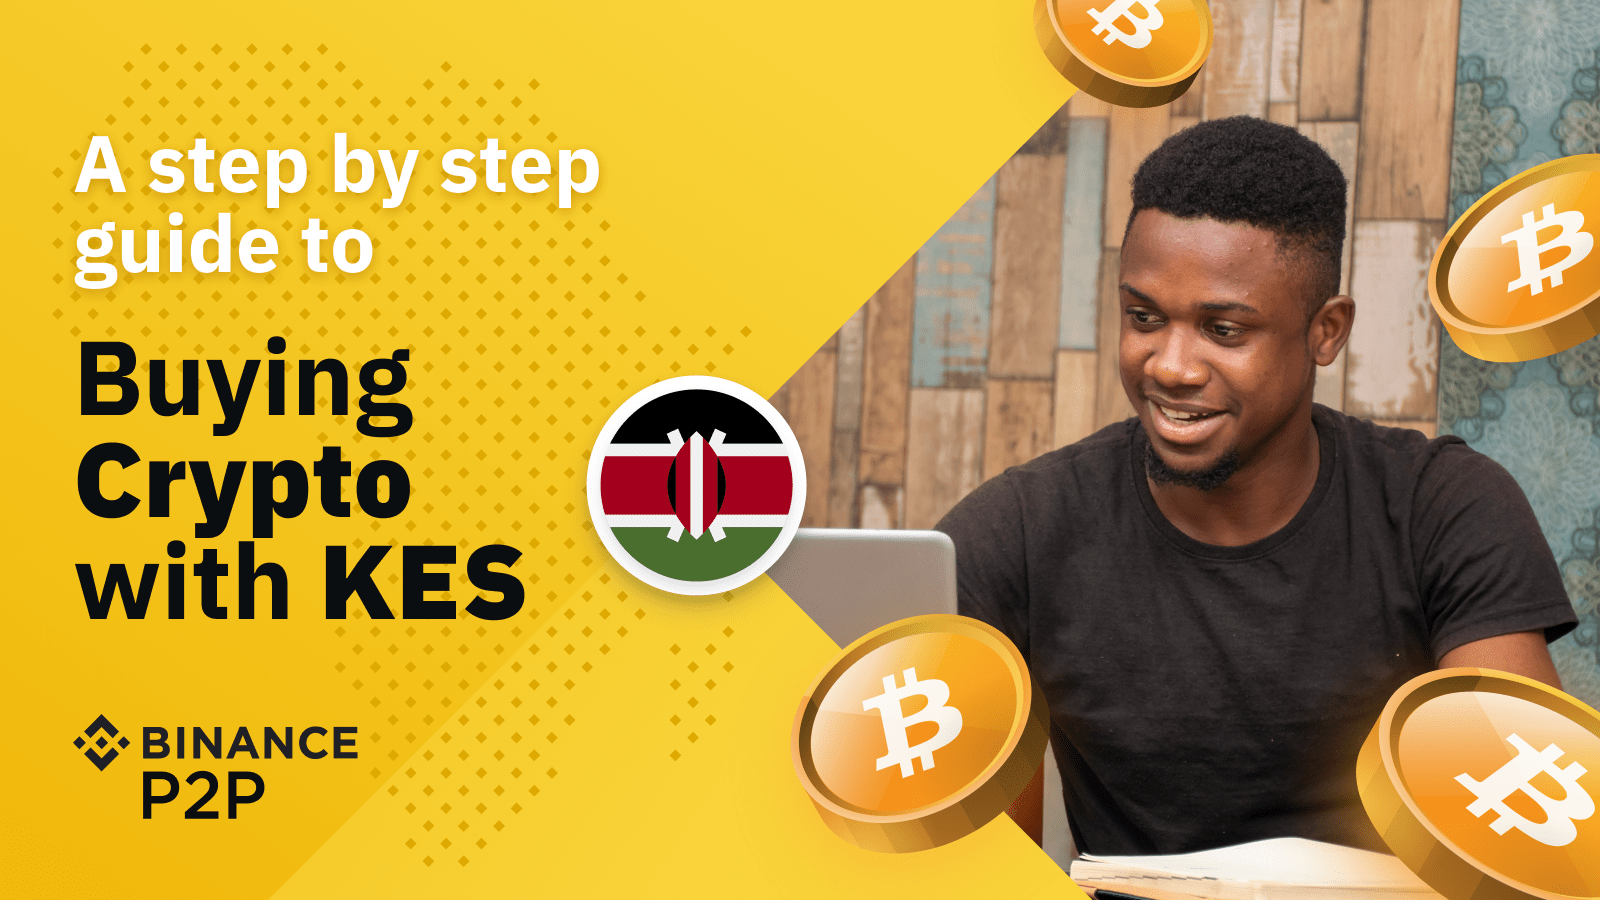 Bitcoins to invest in kenya william hil betting